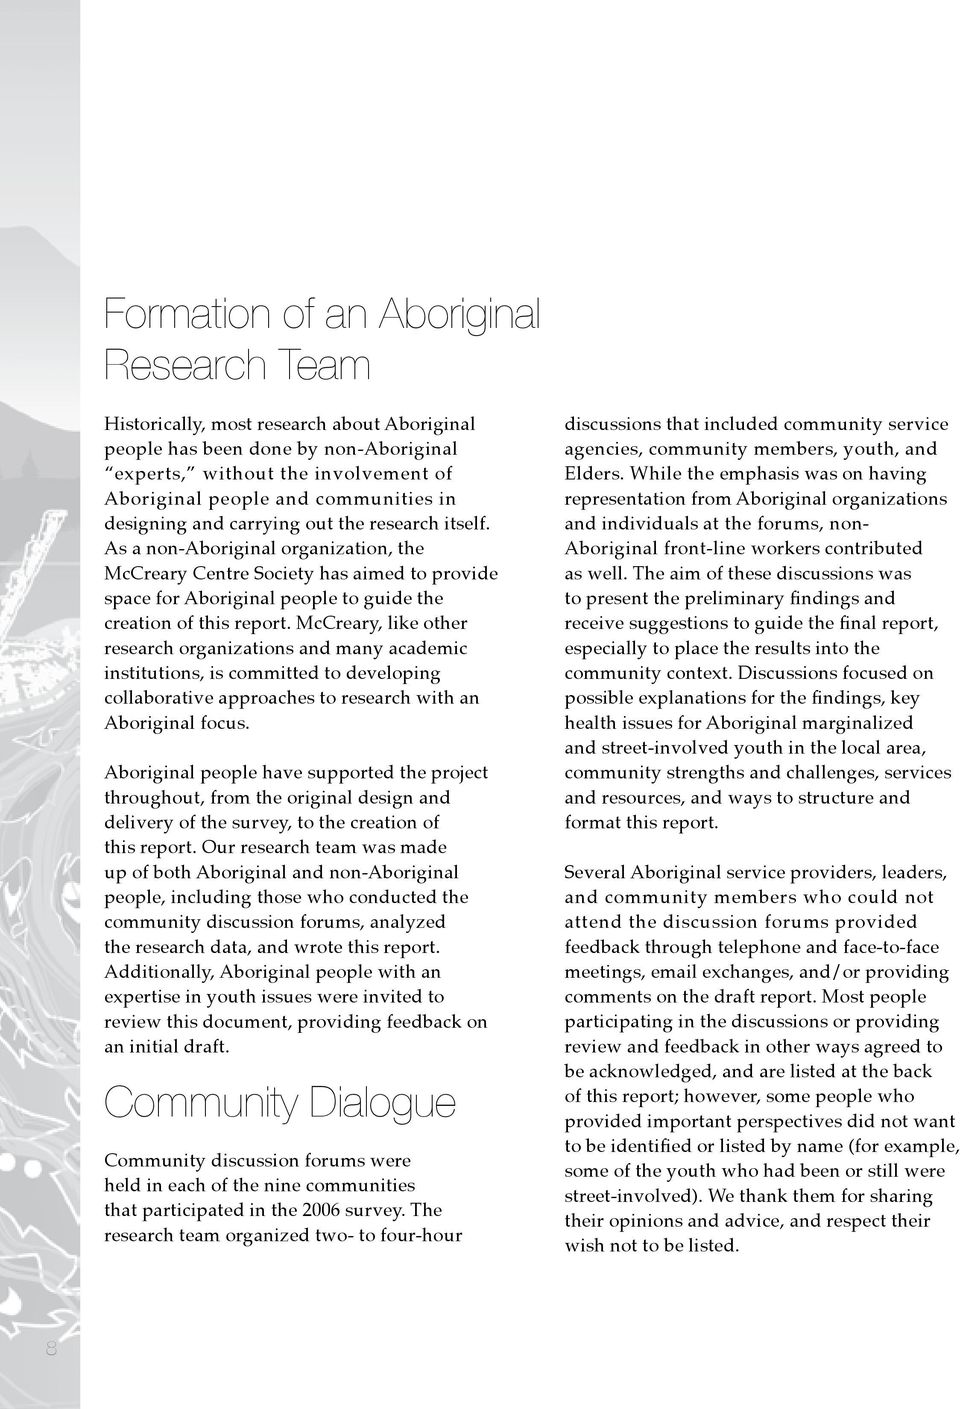 McCreary, like other research organizations and many academic institutions, is committed to developing collaborative approaches to research with an Aboriginal focus.